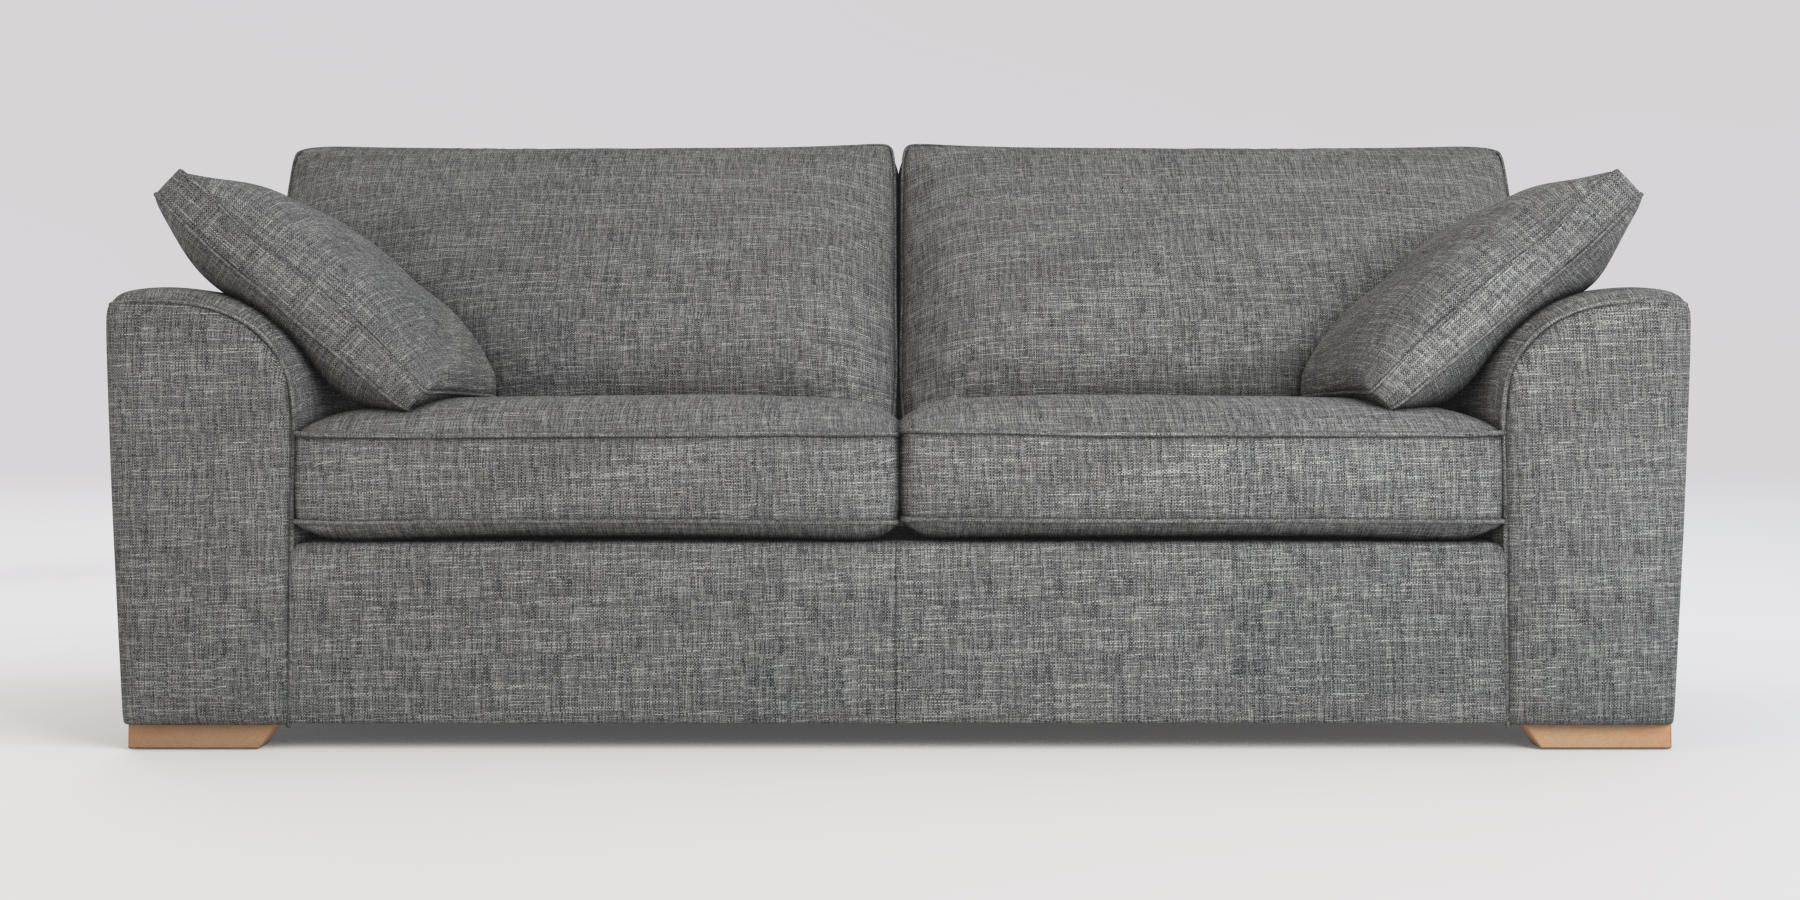 Buy Stamford With Storage Large Sofa 3 Seats Boucle Weave Dark Grey Large Square Angle Light From The Next Uk Online Shop Large Sofa Sofa Living Room Grey